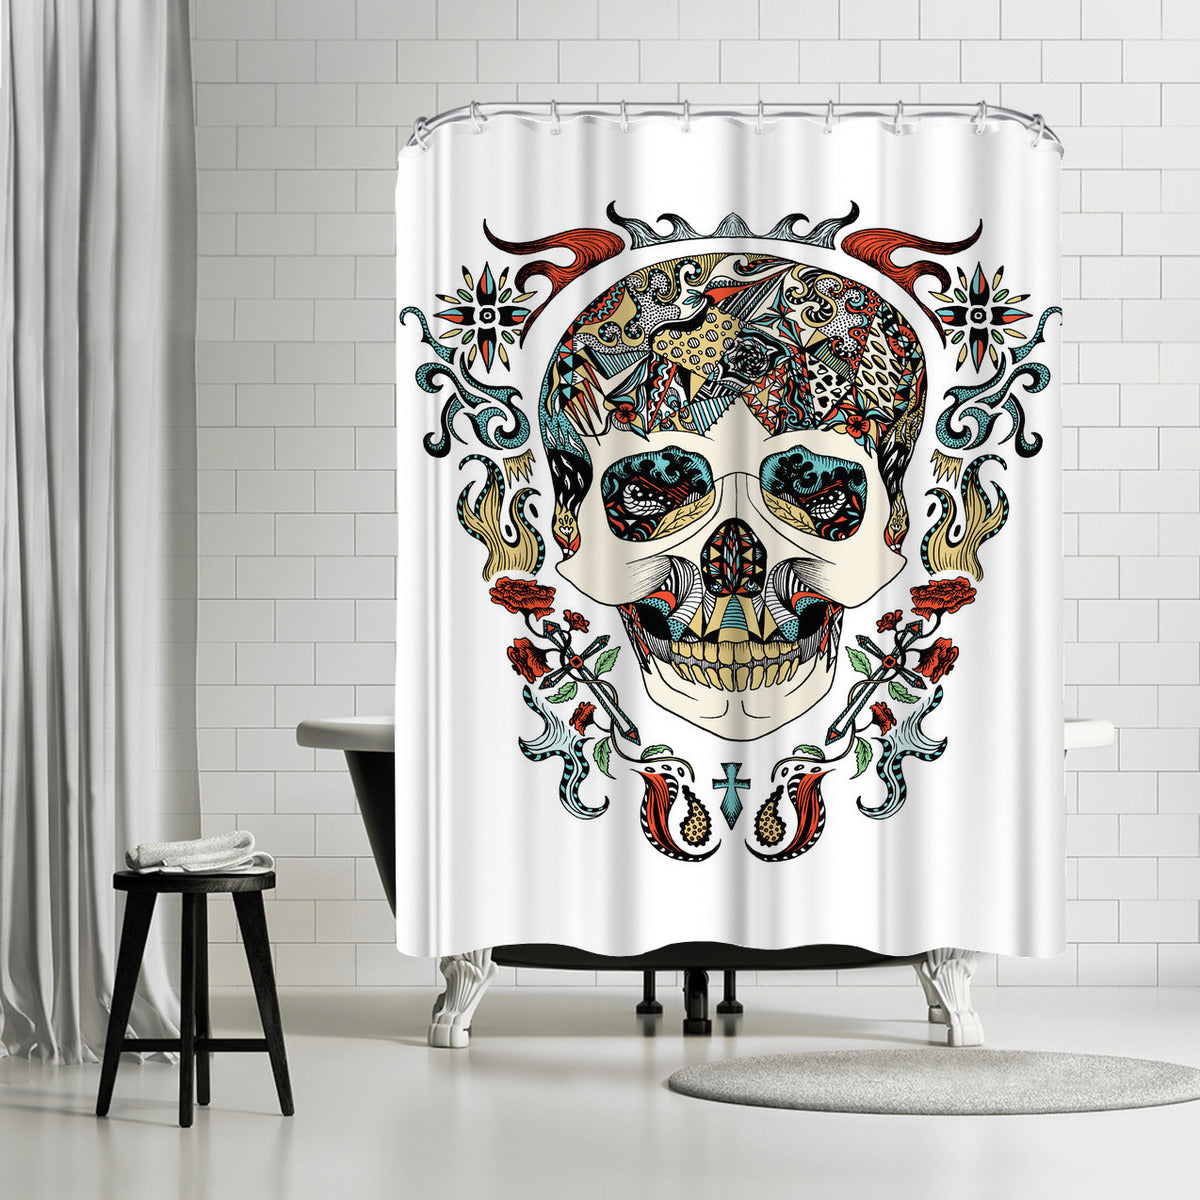 Skull by Patricia Pino Shower Curtain -  - Americanflat